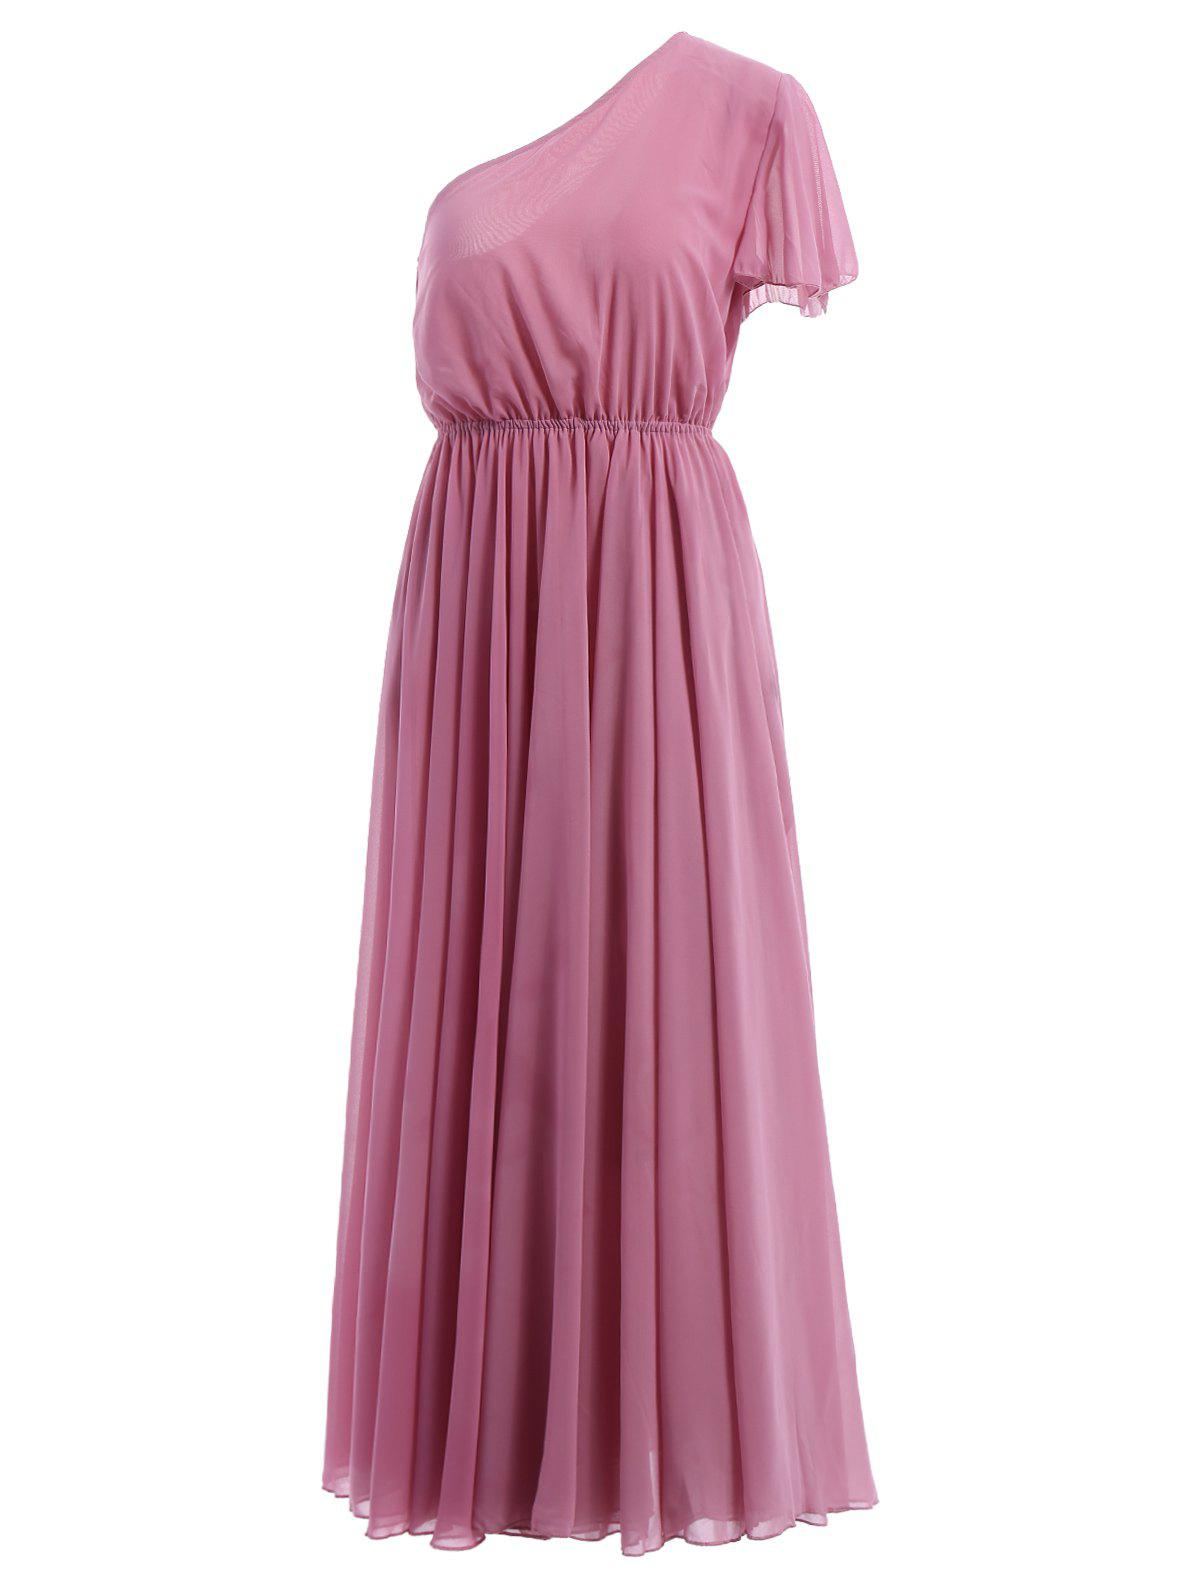 Sweet Women's One-Shoulder Short Sleeve Maxi Dress